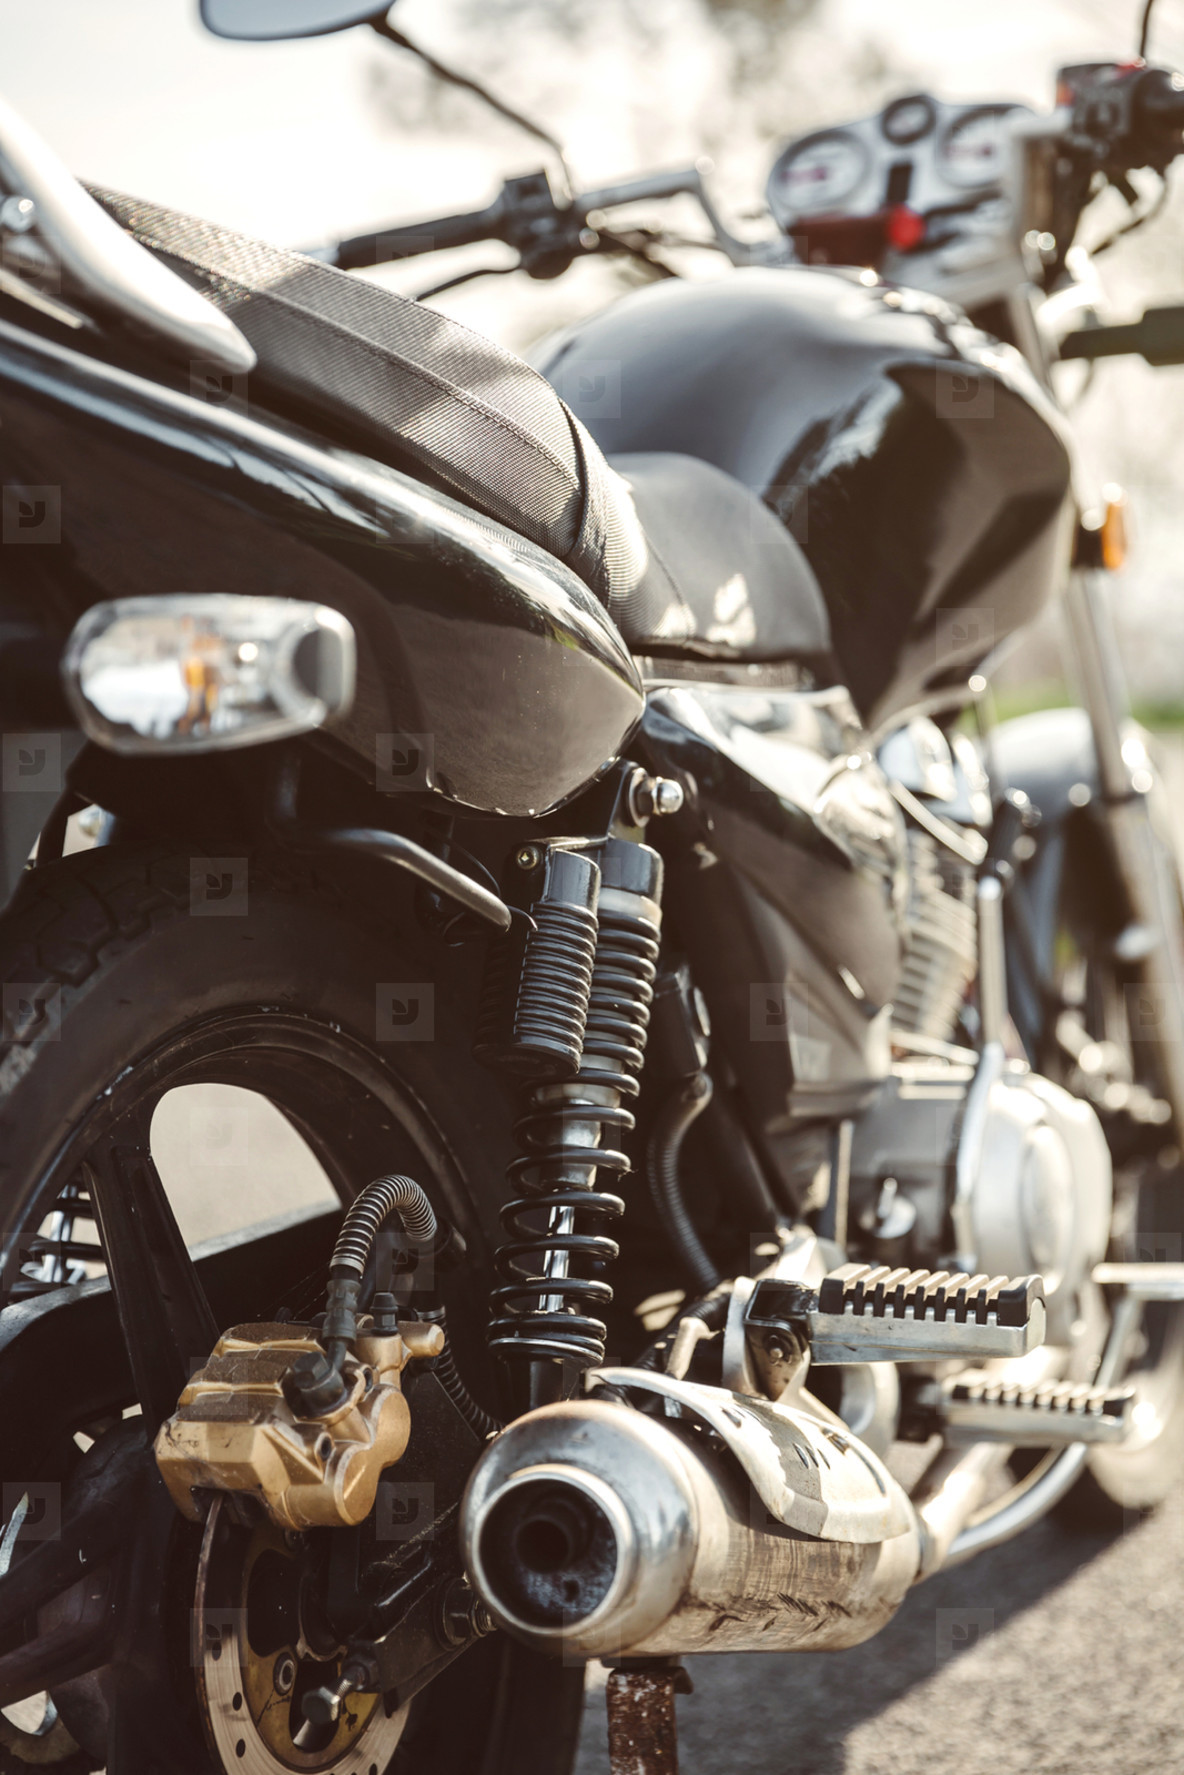 Shock absorber and exhaust pipe of black motorcycle